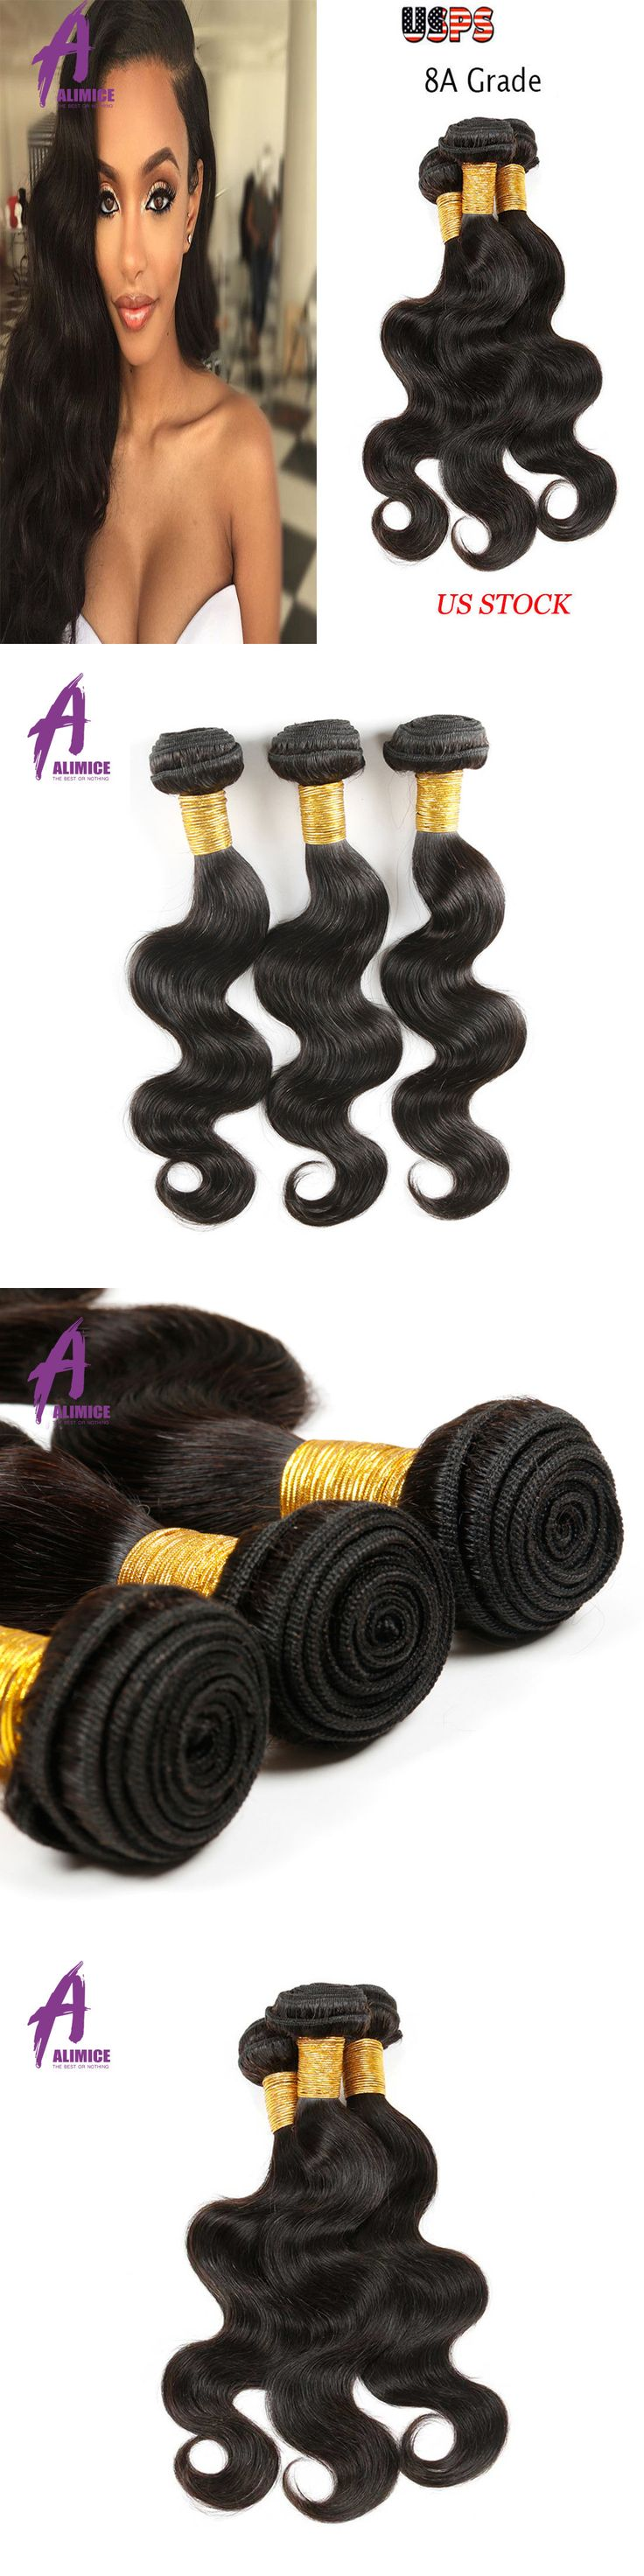 Hair Extensions: 8A Brazilian Remy Body Wave100% Human Hair Extensions Weave Weft 3Bundles 300G -> BUY IT NOW ONLY: $89.77 on eBay!